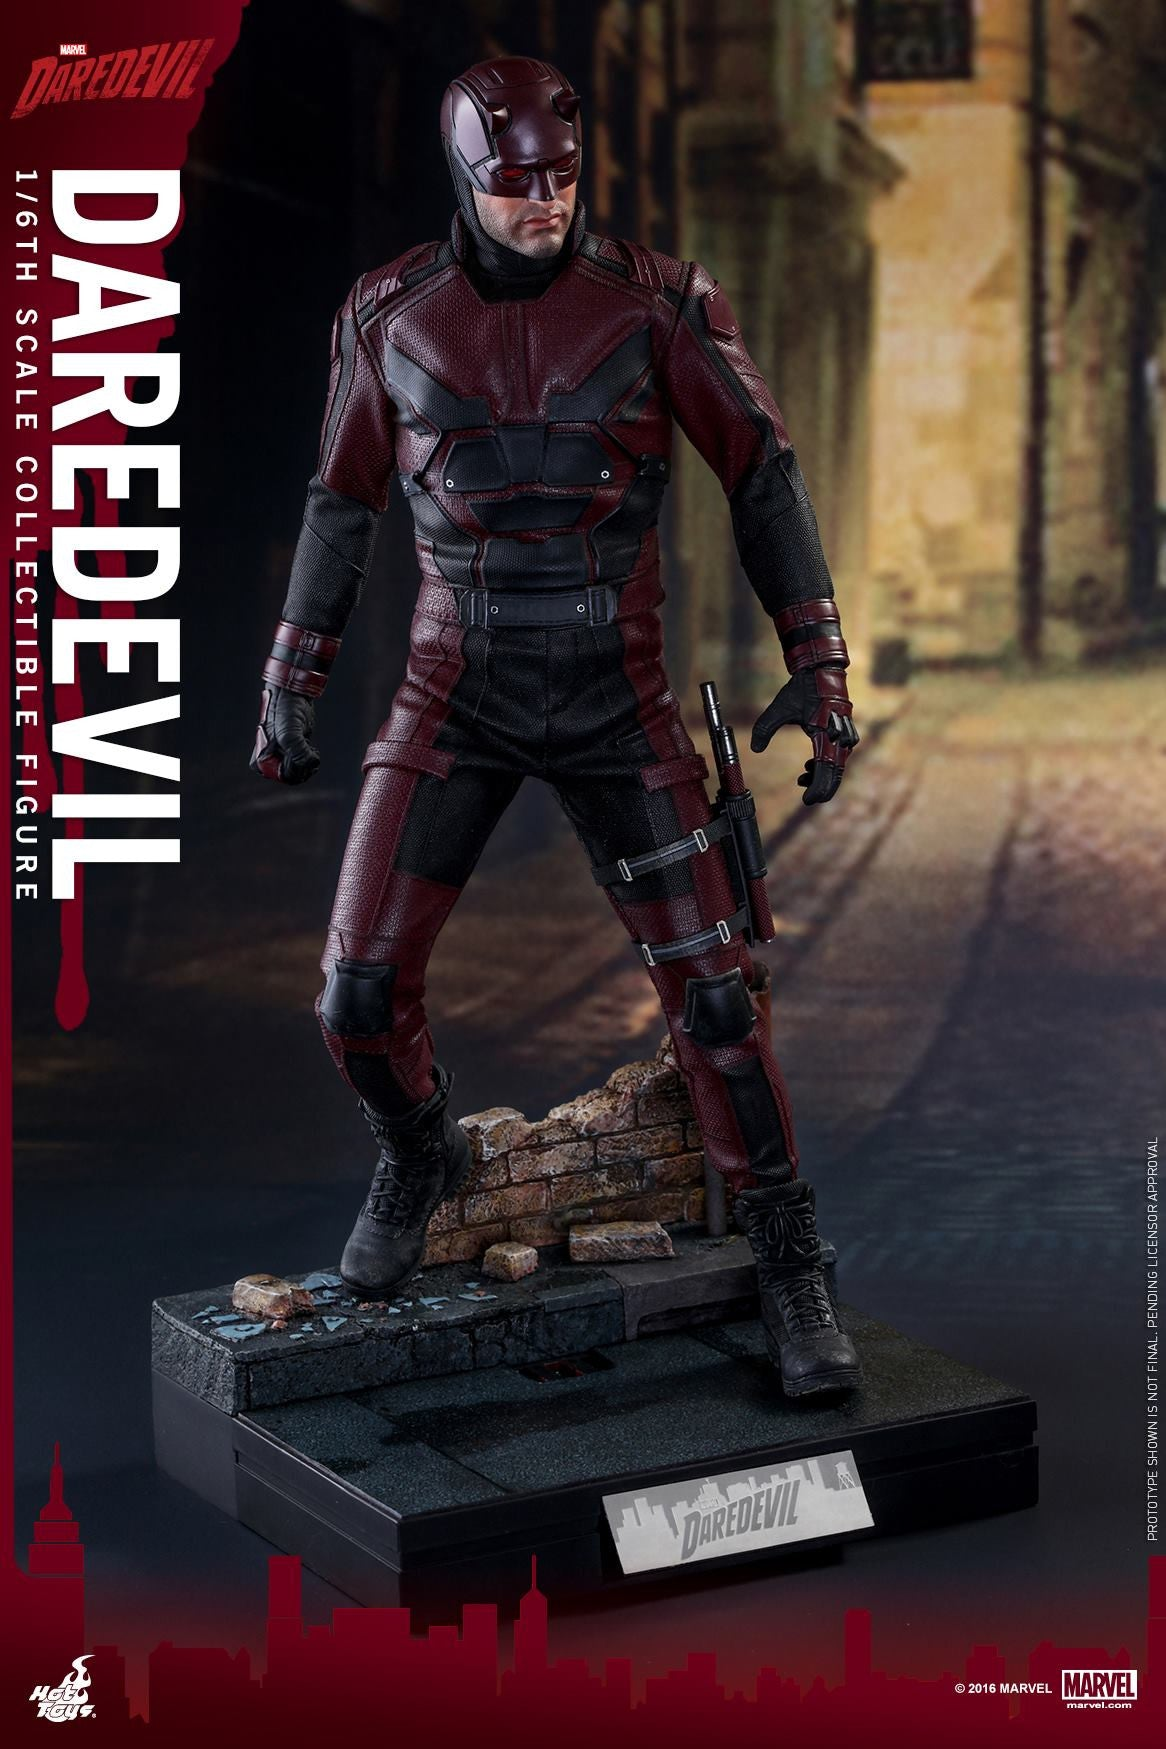 Hot Toys - TMS003 - Marvel's Daredevil - Daredevil - Marvelous Toys - 9